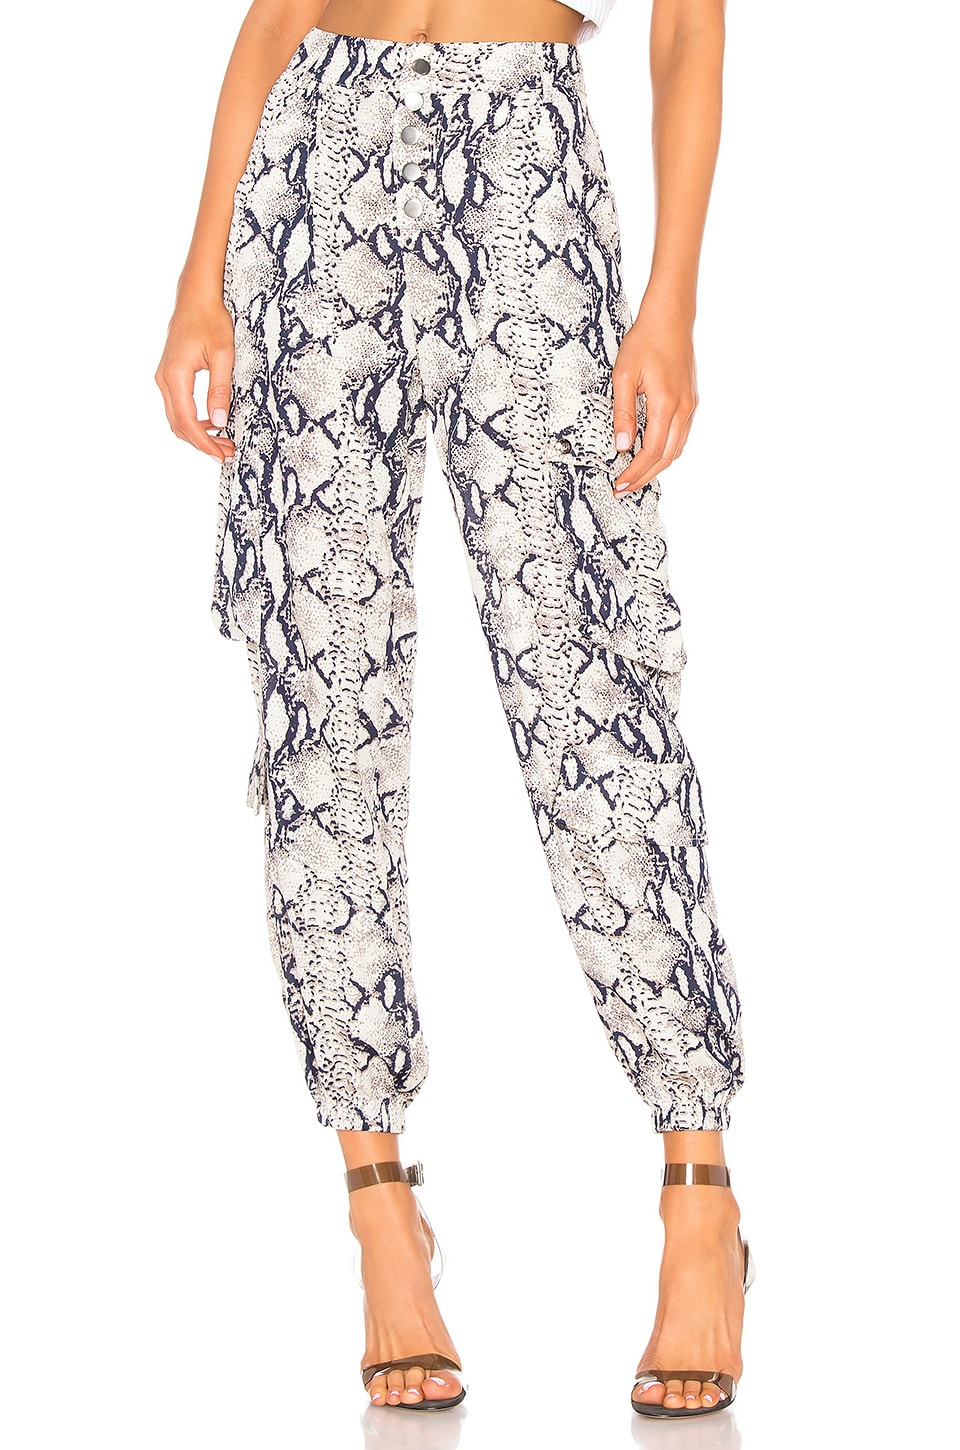 LIONESS Cypress Pant in Python Print